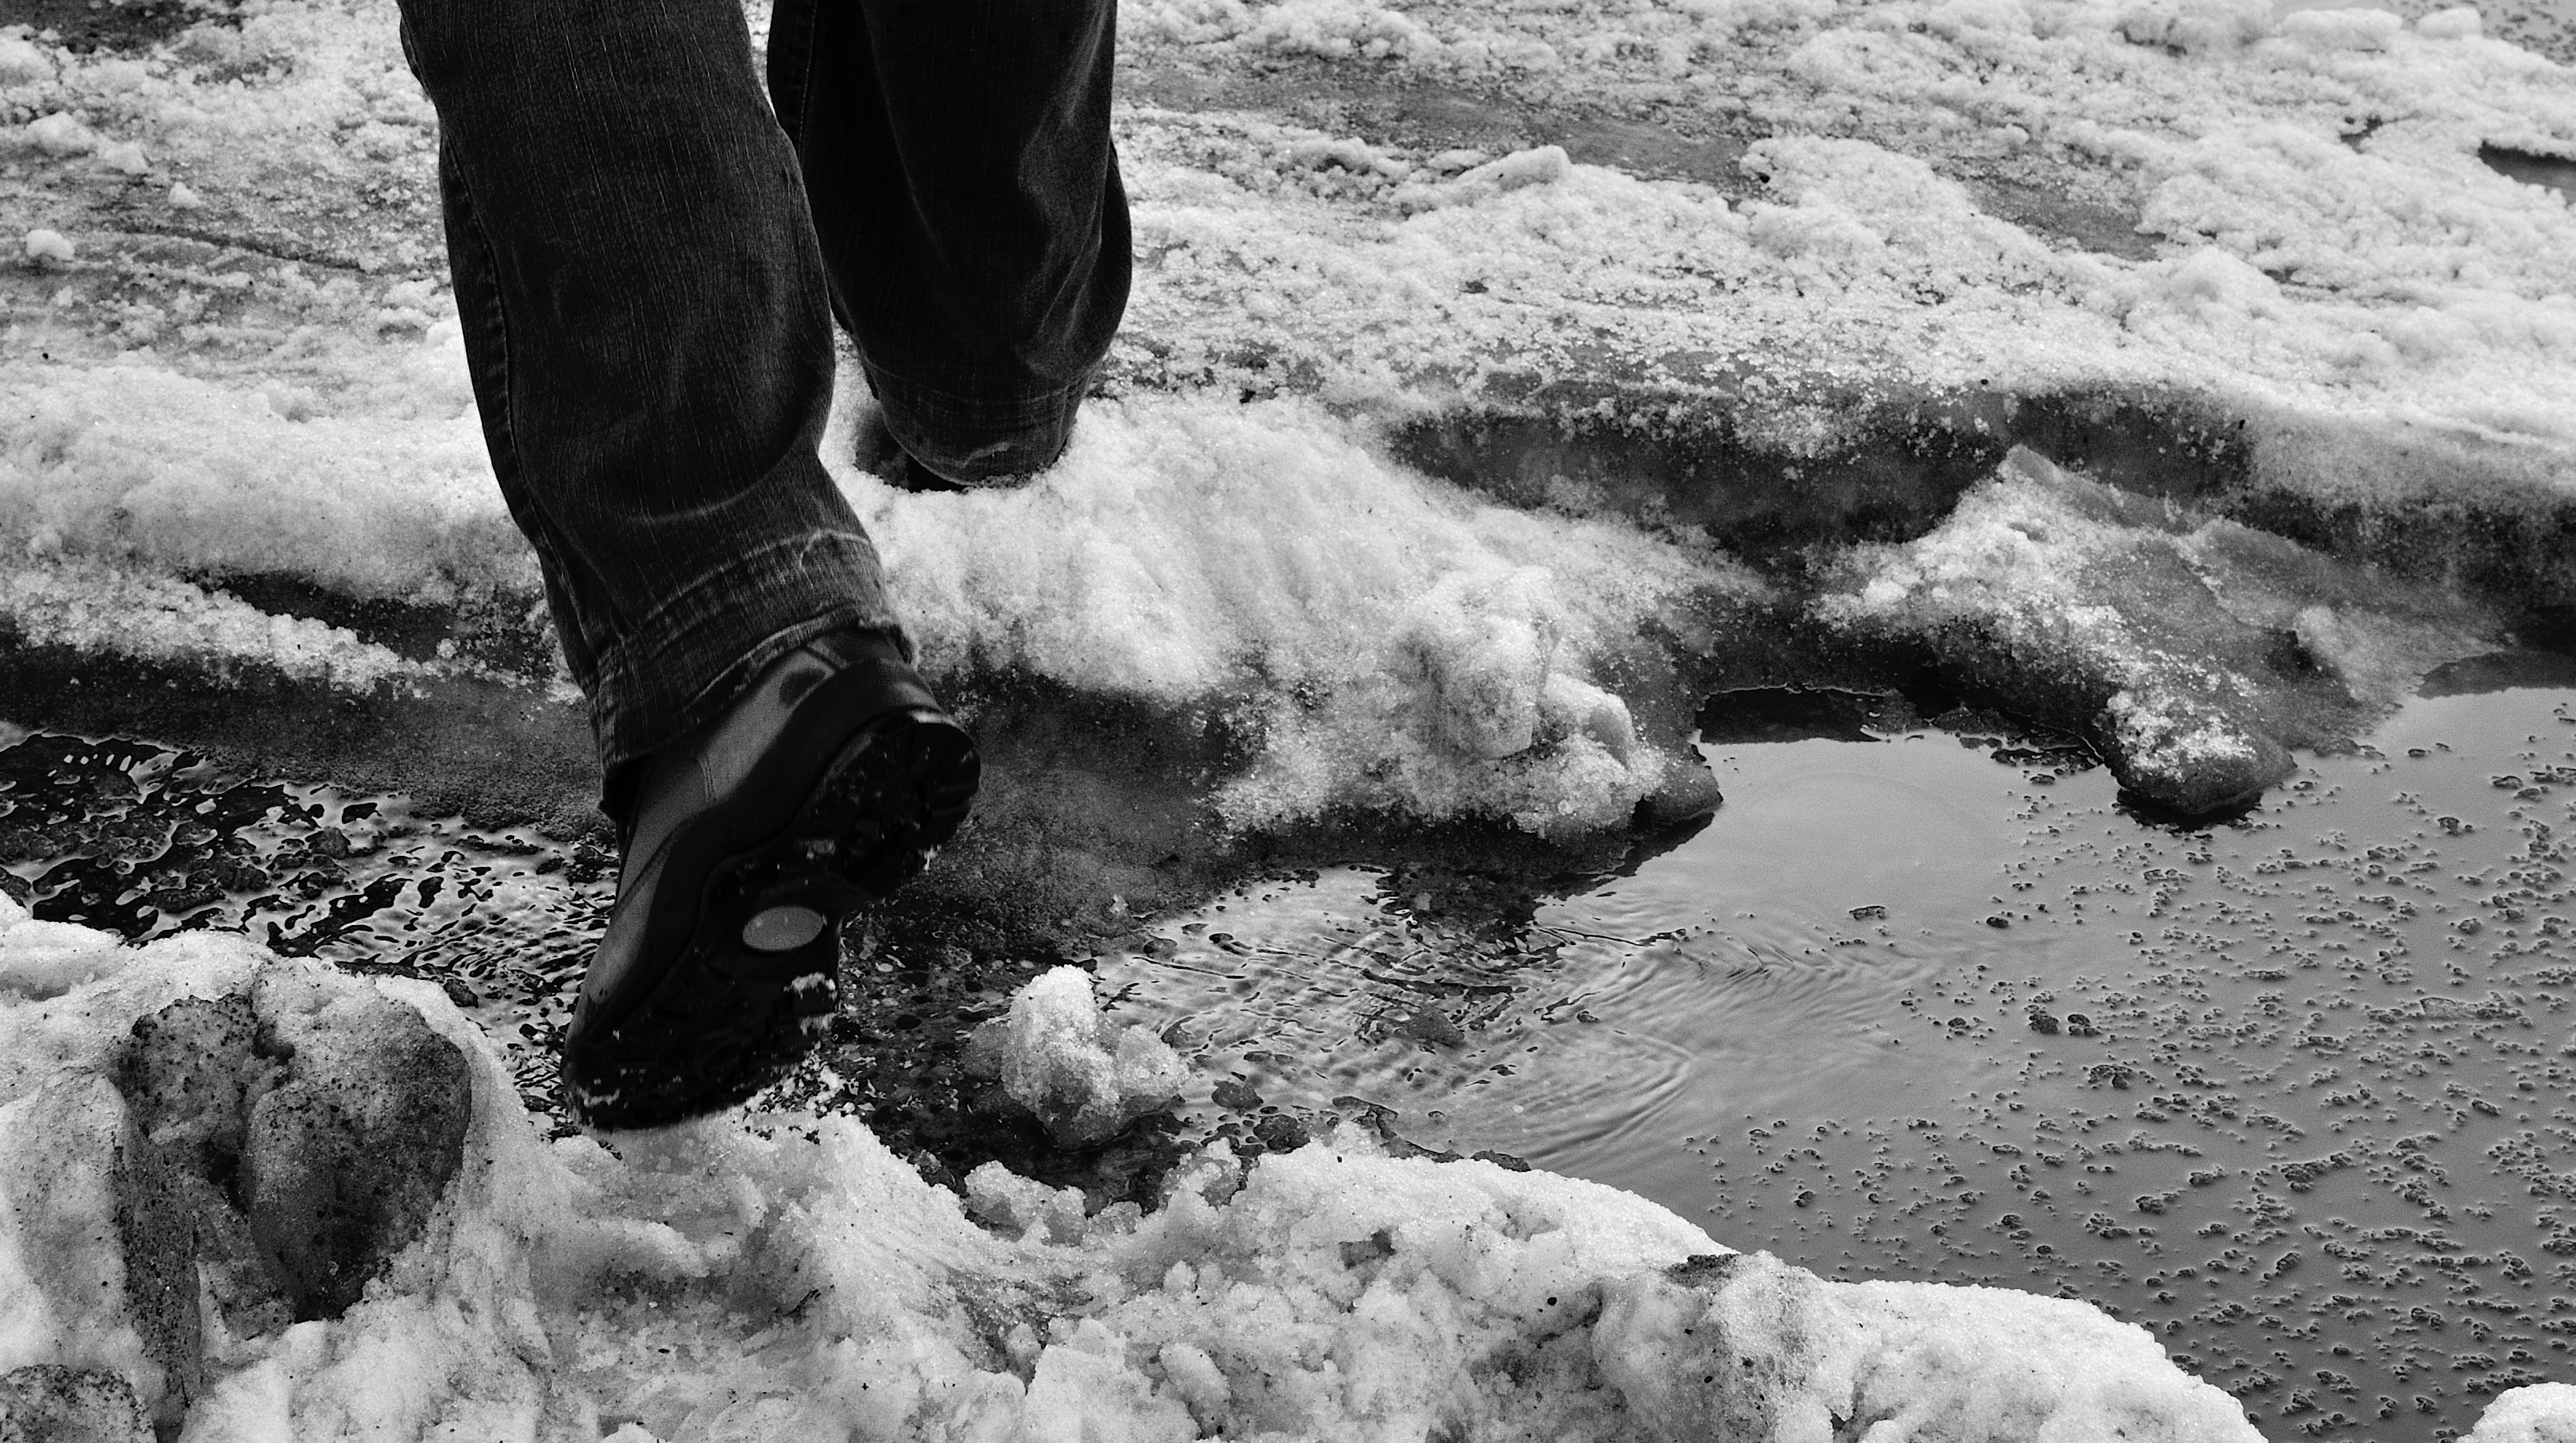 A person walking through sludge and snow